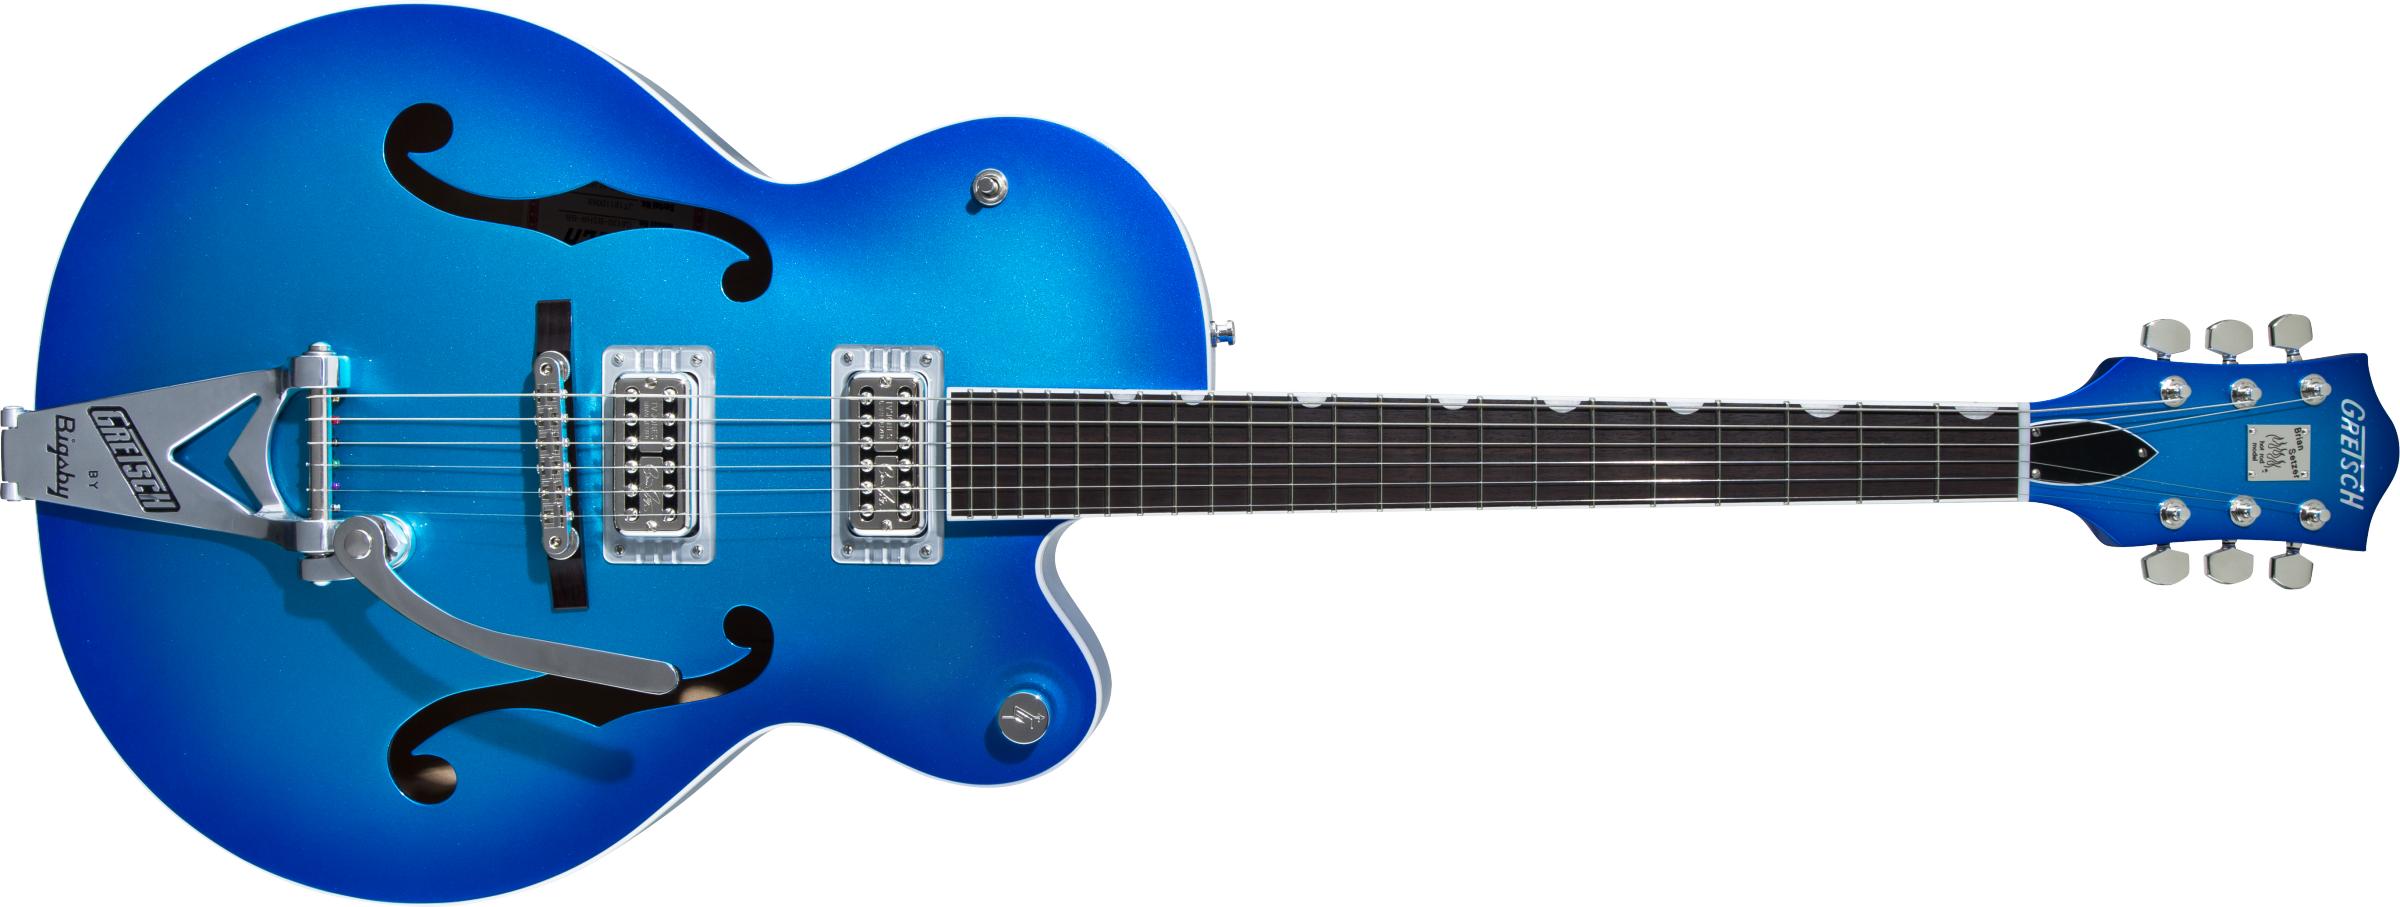 GRETSCH-G6120T-HR-Brian-Setzer-Signature-Hot-Rod-Hollow-Body-with-Bigsby-Rosewood-Fingerboard-Candy-Blue-Burst-sku-571004088